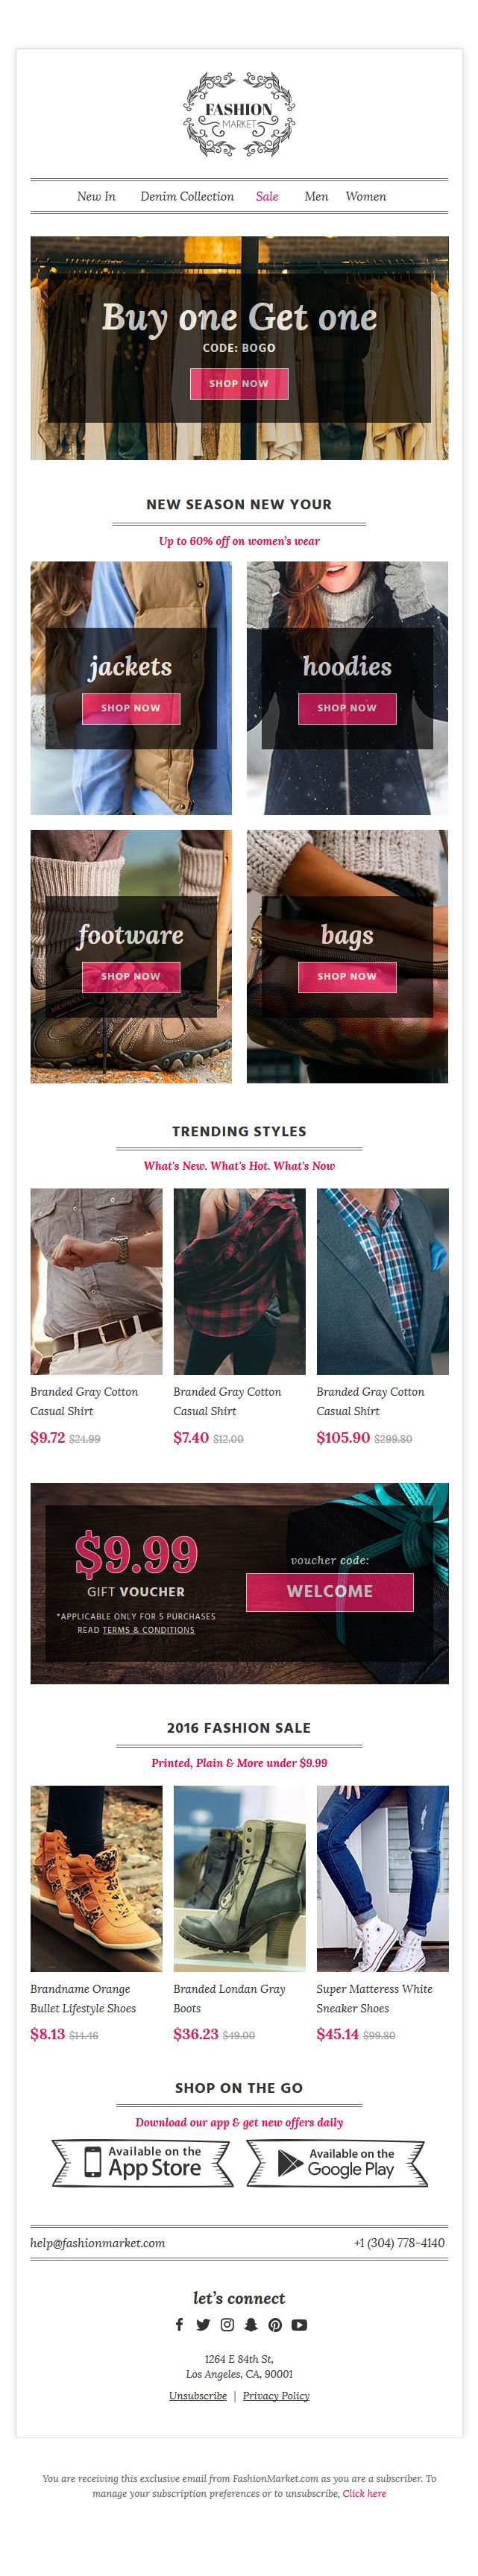 Cool free ecommerce email template pack by @icondice